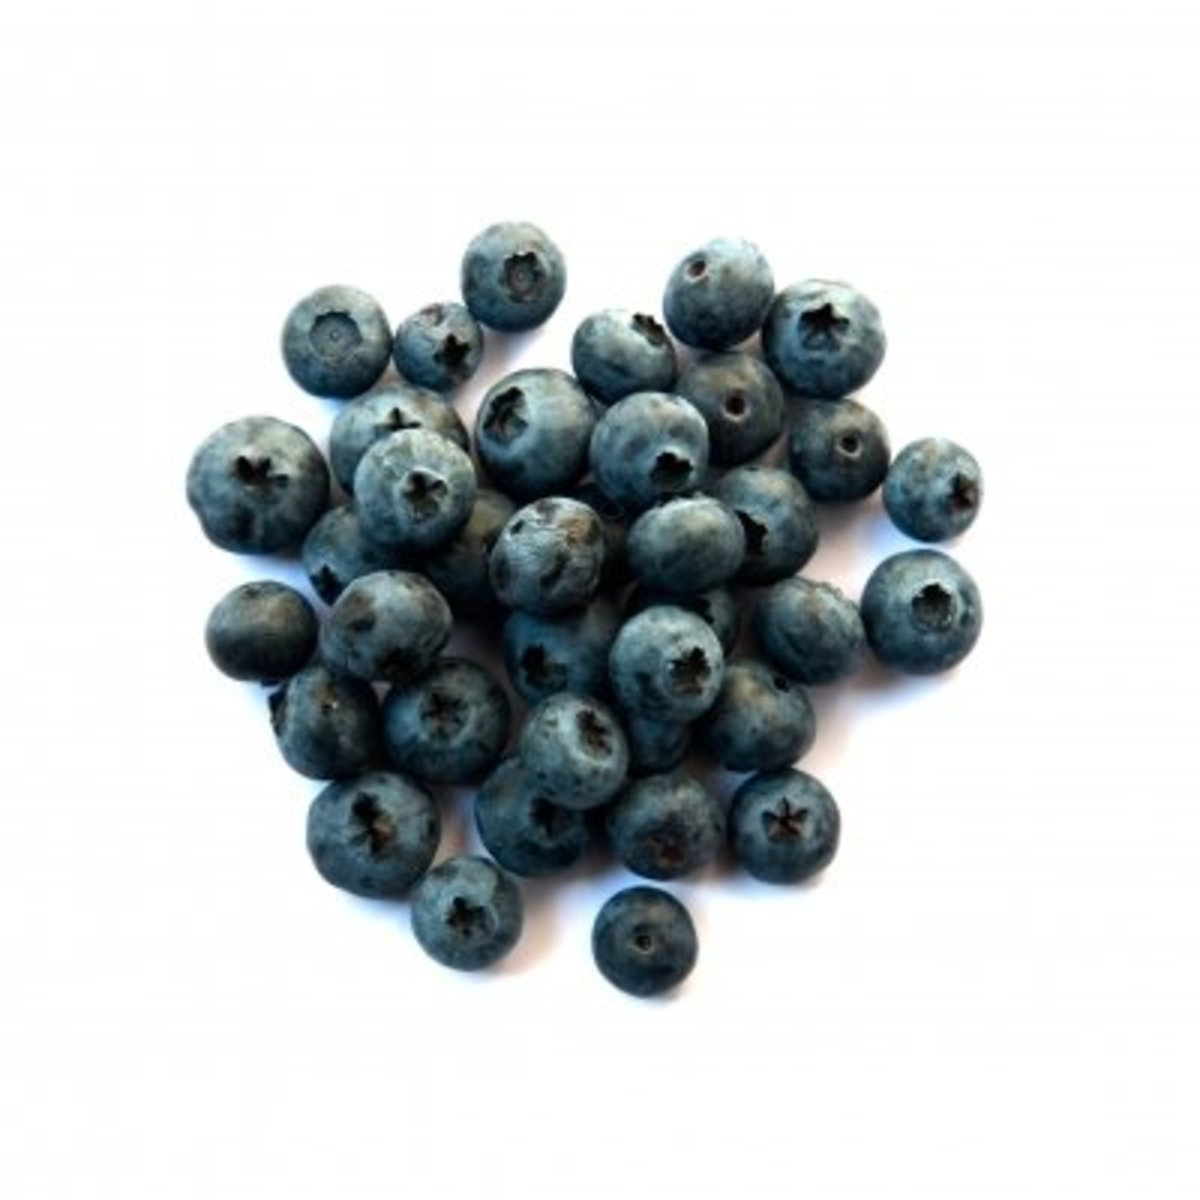 benefit-of-blueberries